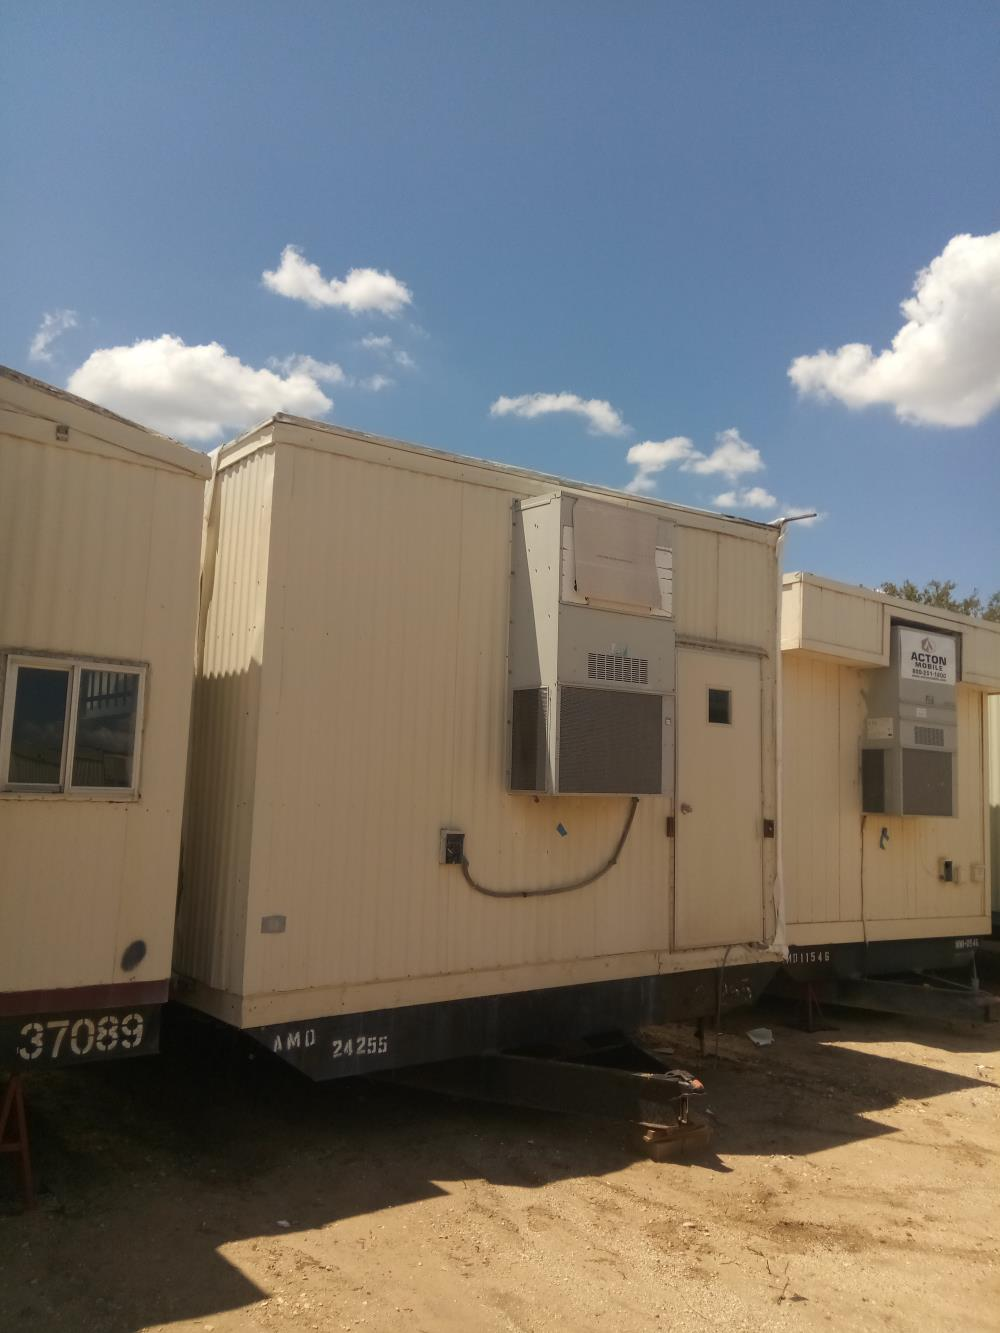 64'x28' Section Modular for sale in San Antonio, TX - CPX-98276 - 5